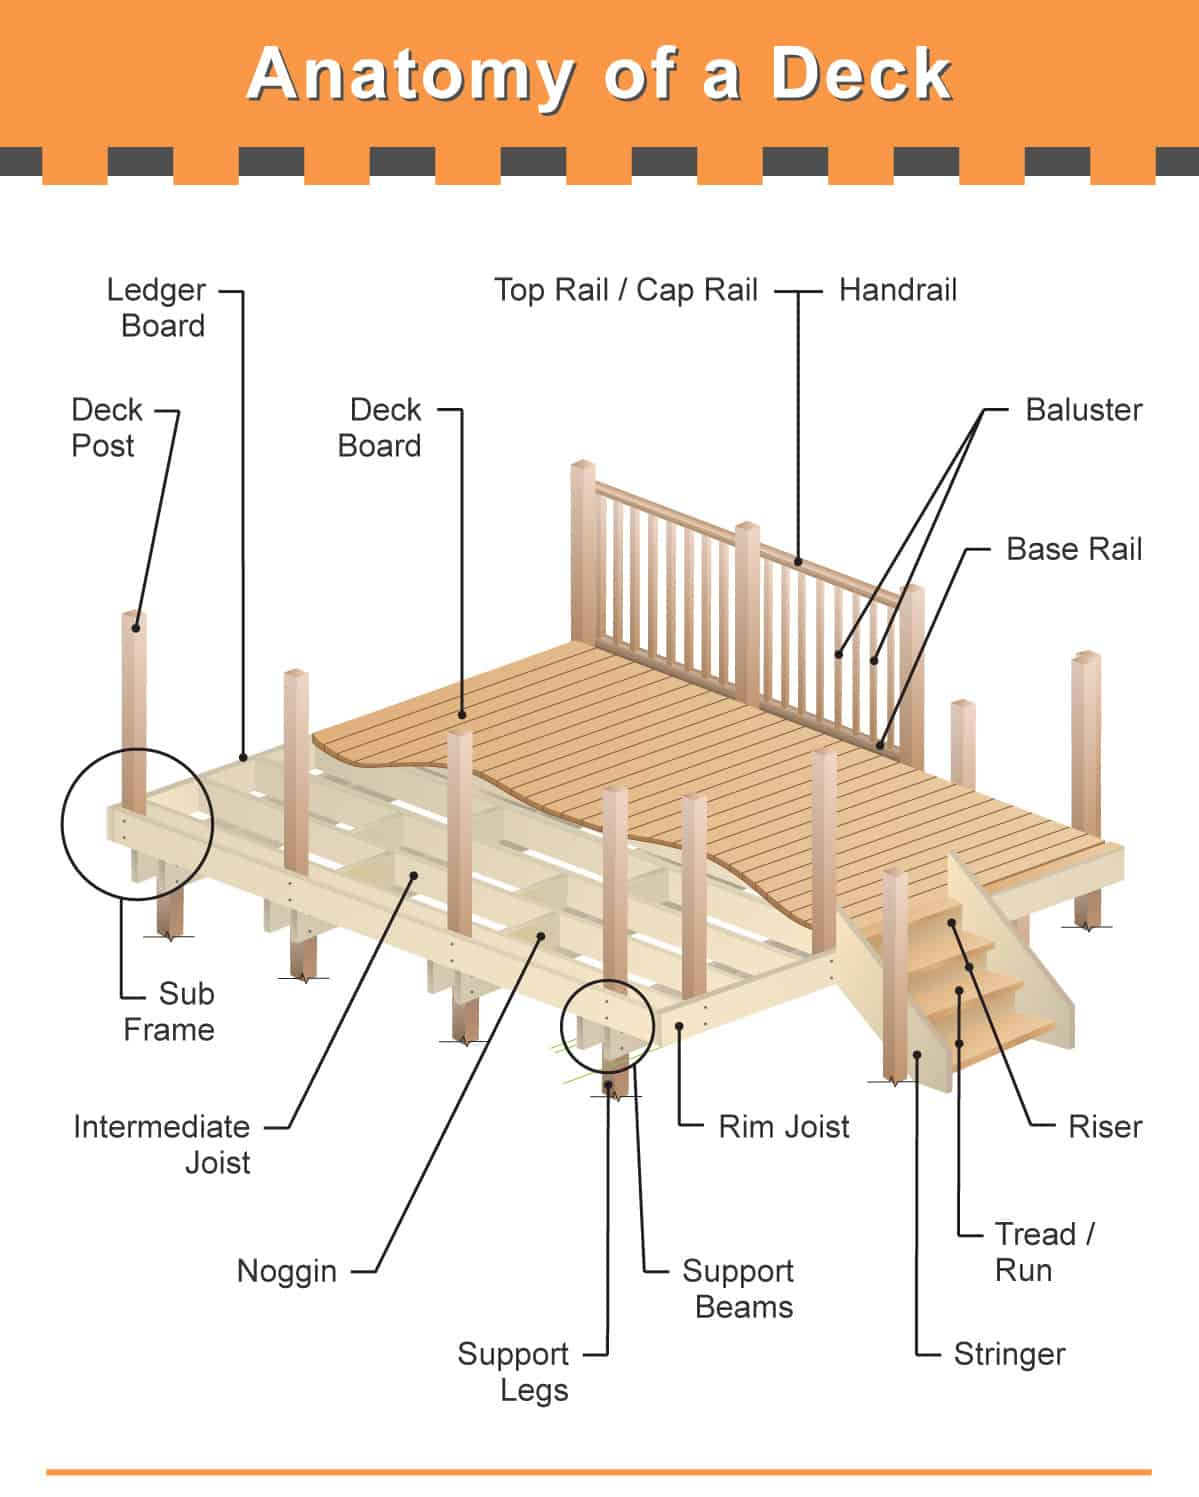 parts of a pirate ship diagram wiring for ignition switch on lawn mower deck schematic the many very detailed diagrams with labels